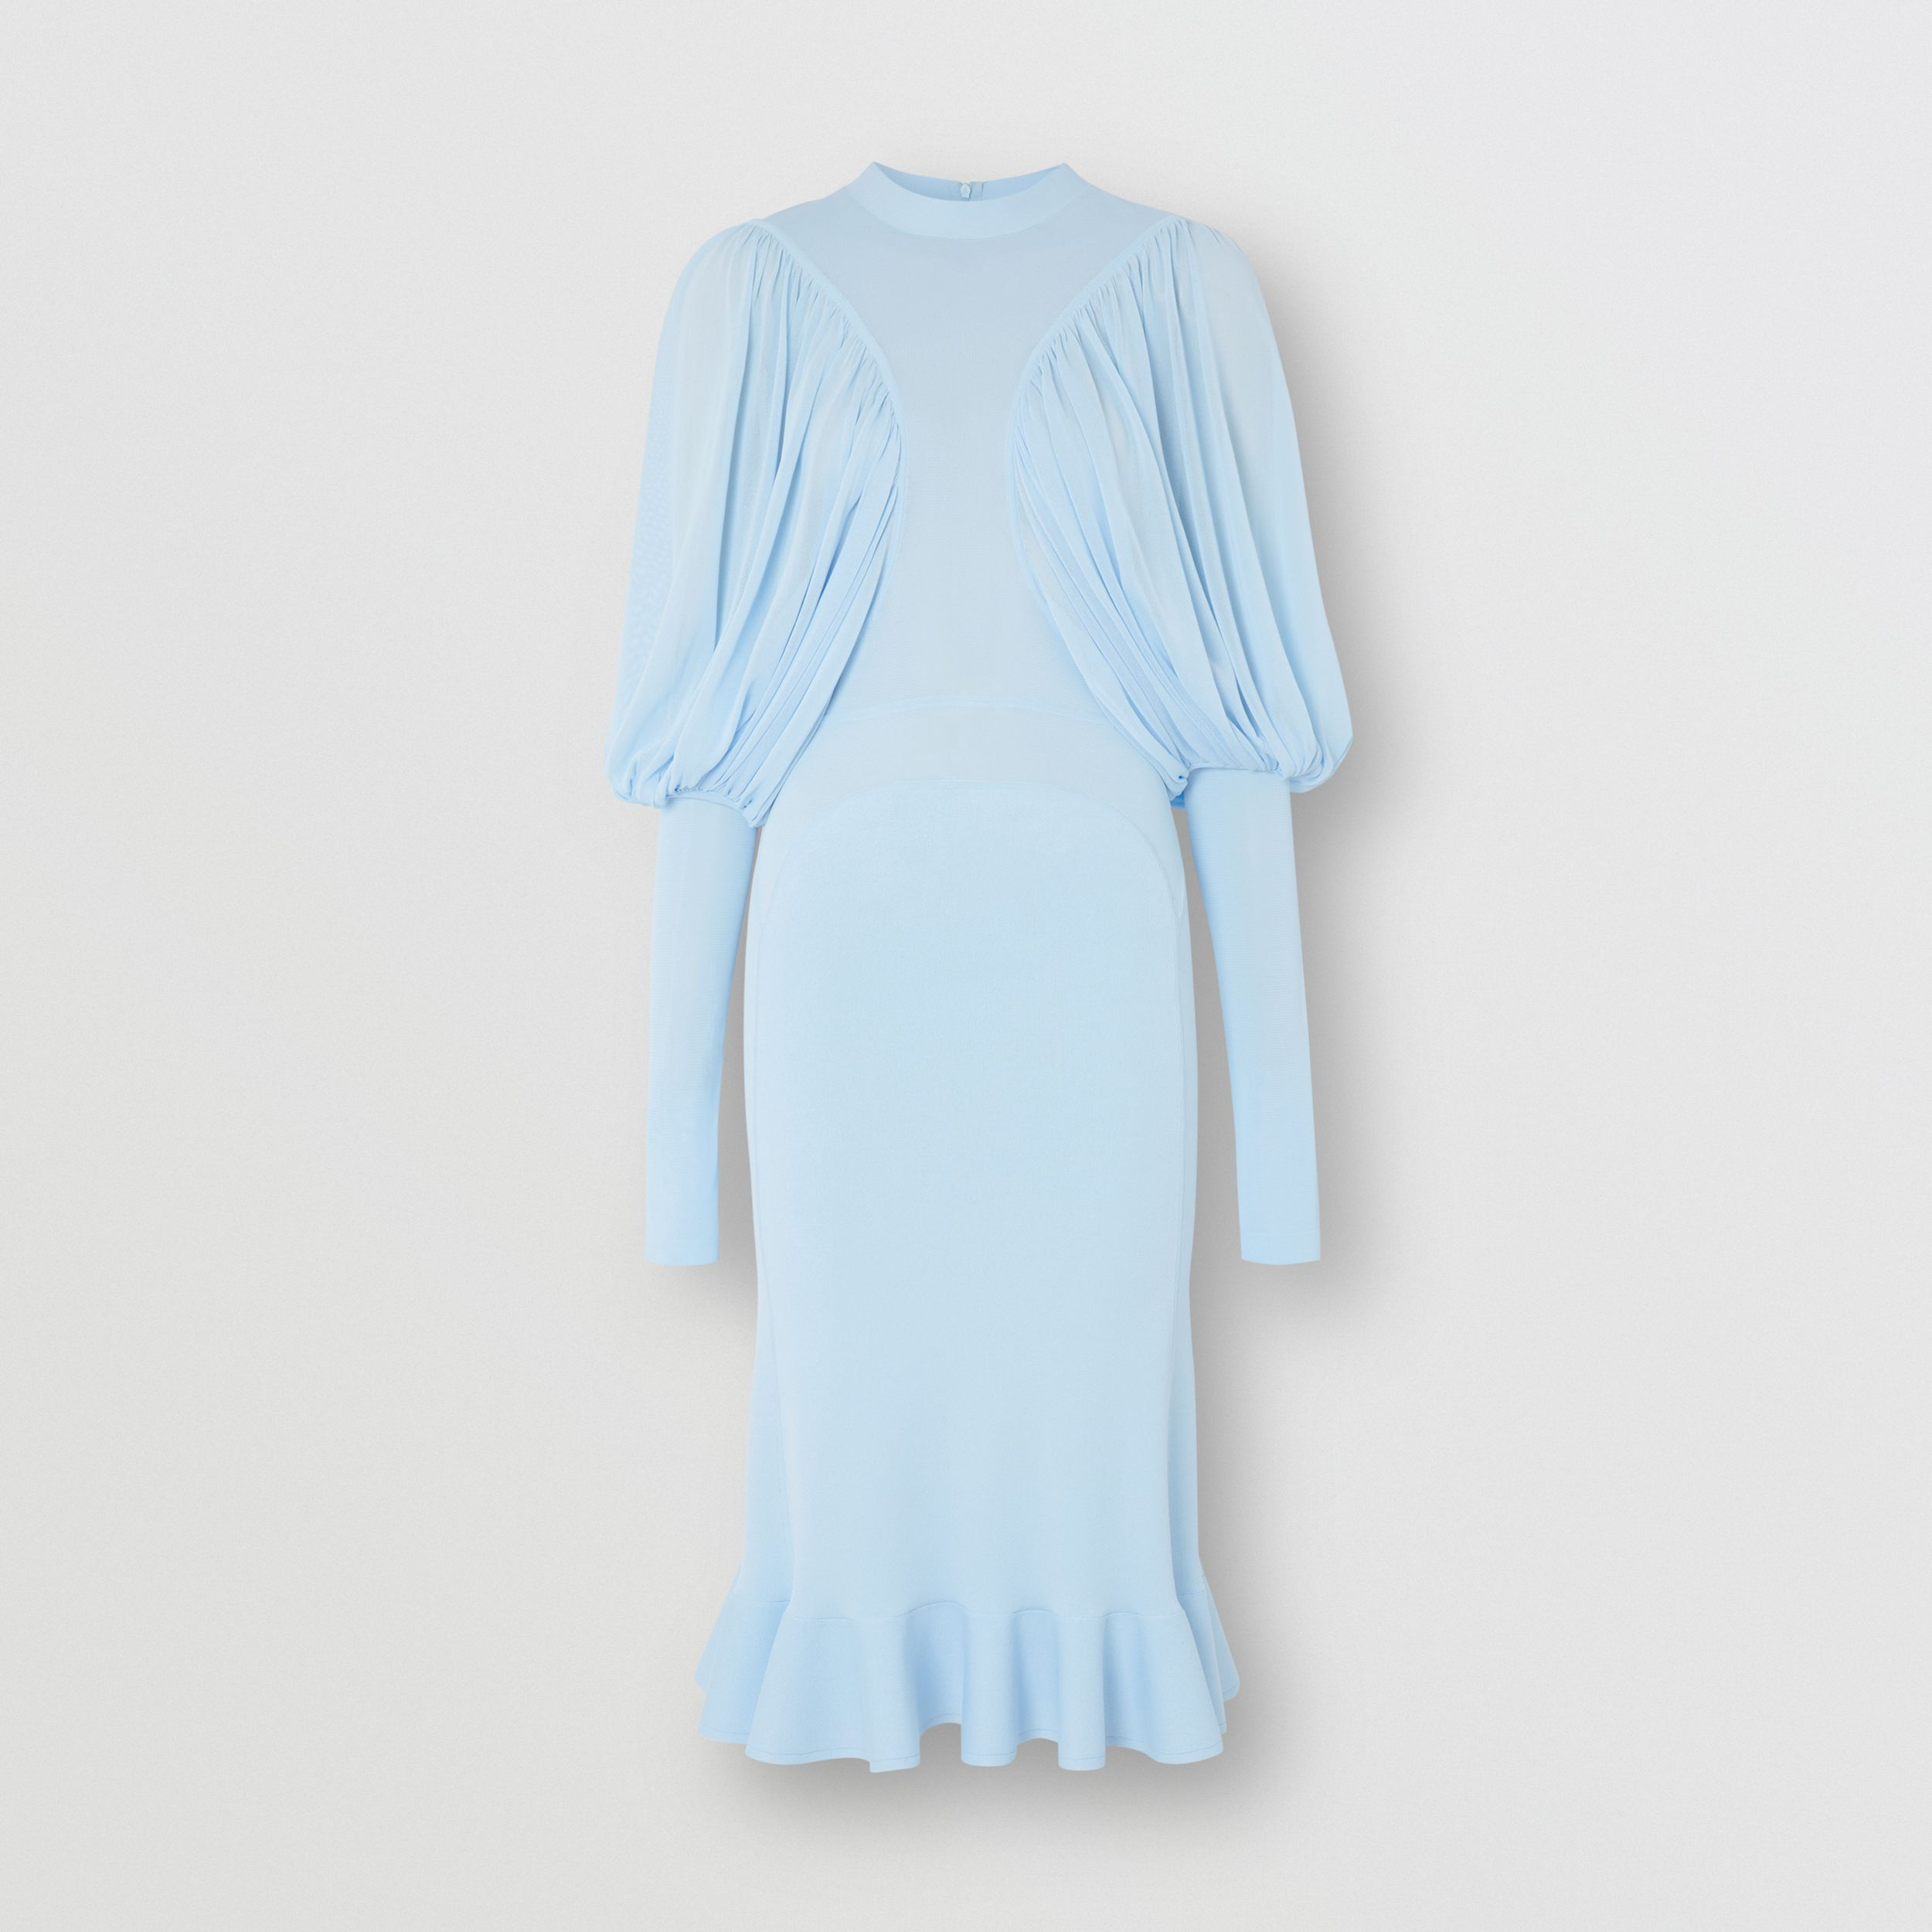 Puff-sleeve Jersey Dress in Pale Blue - Women | Burberry - 4